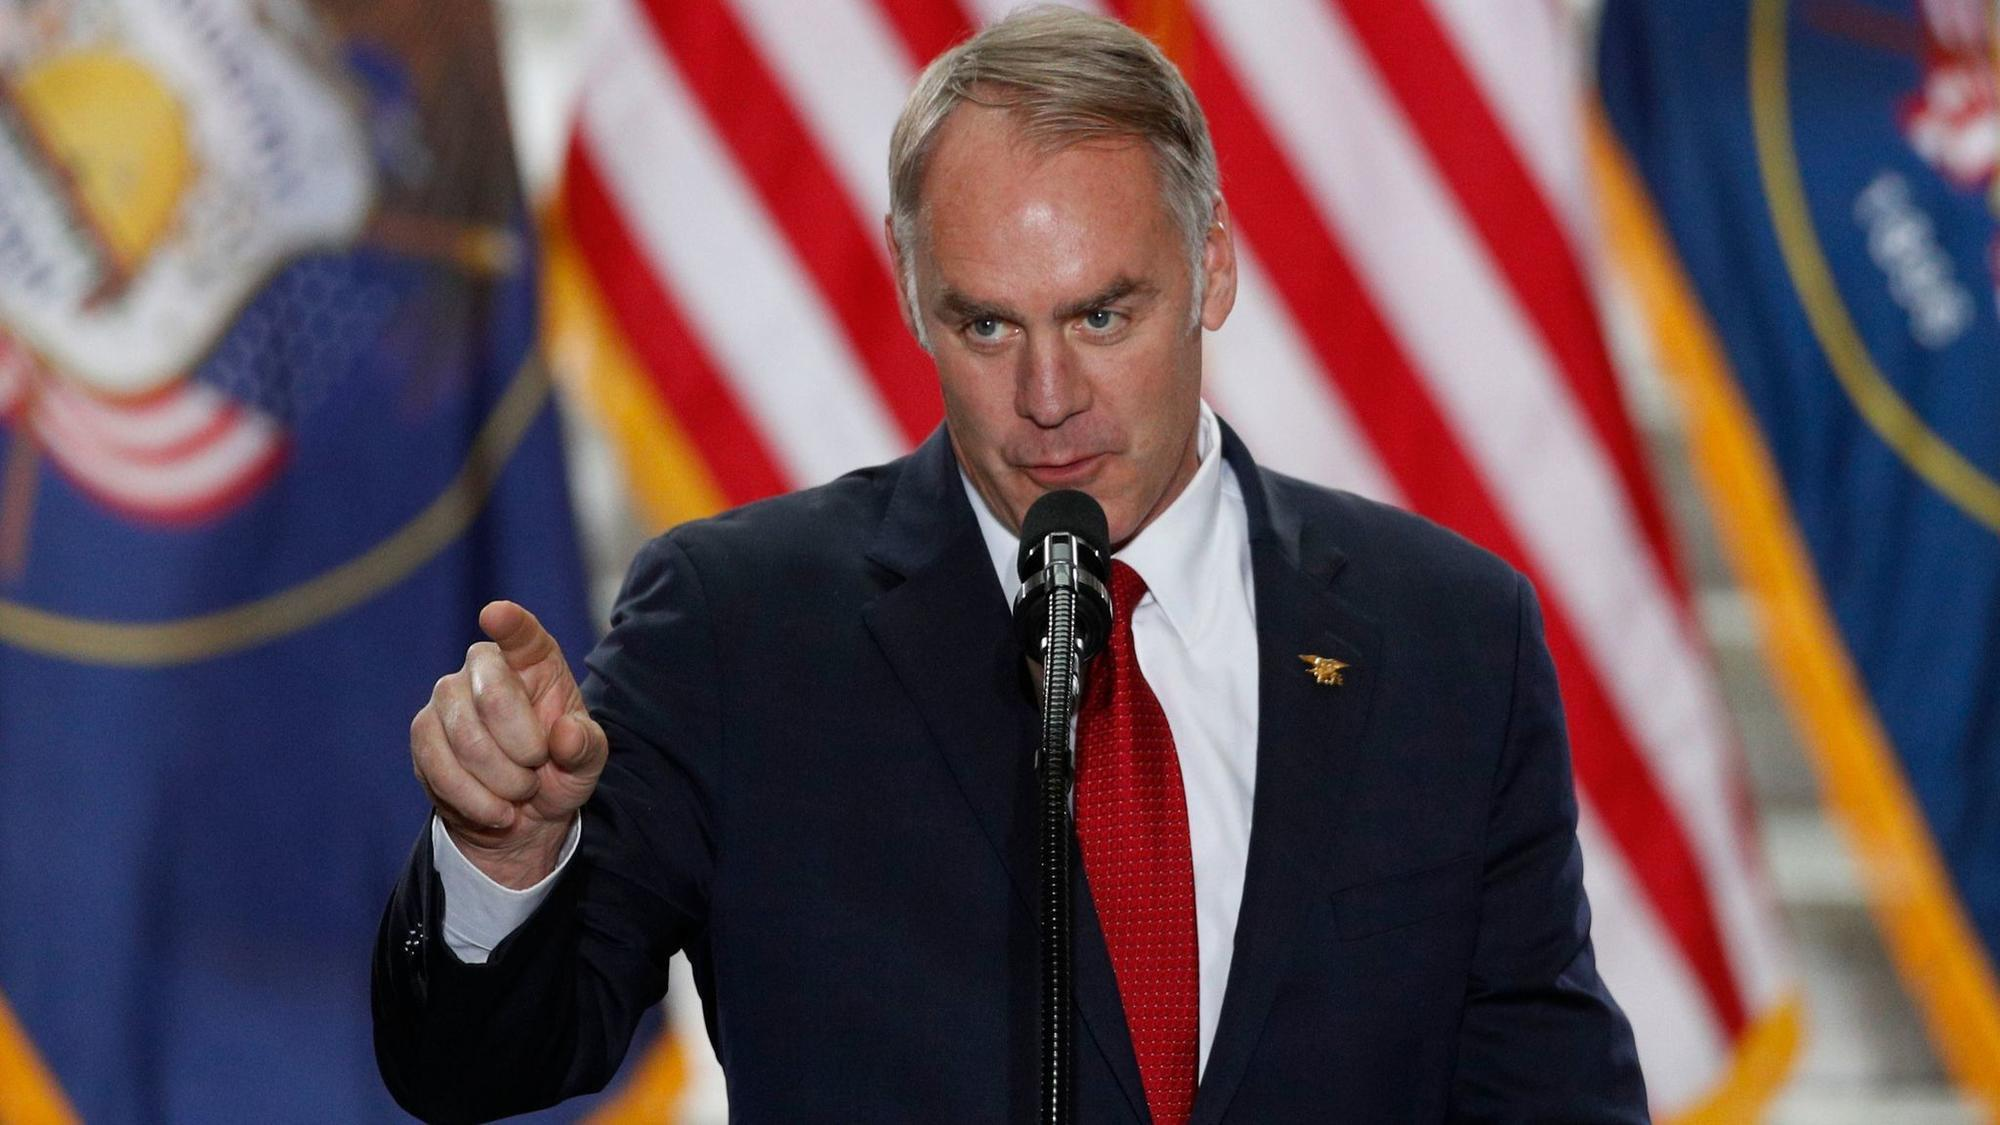 Interior Secretary Zinke reportedly dressed down Joshua Tree superintendent over climate change tweets